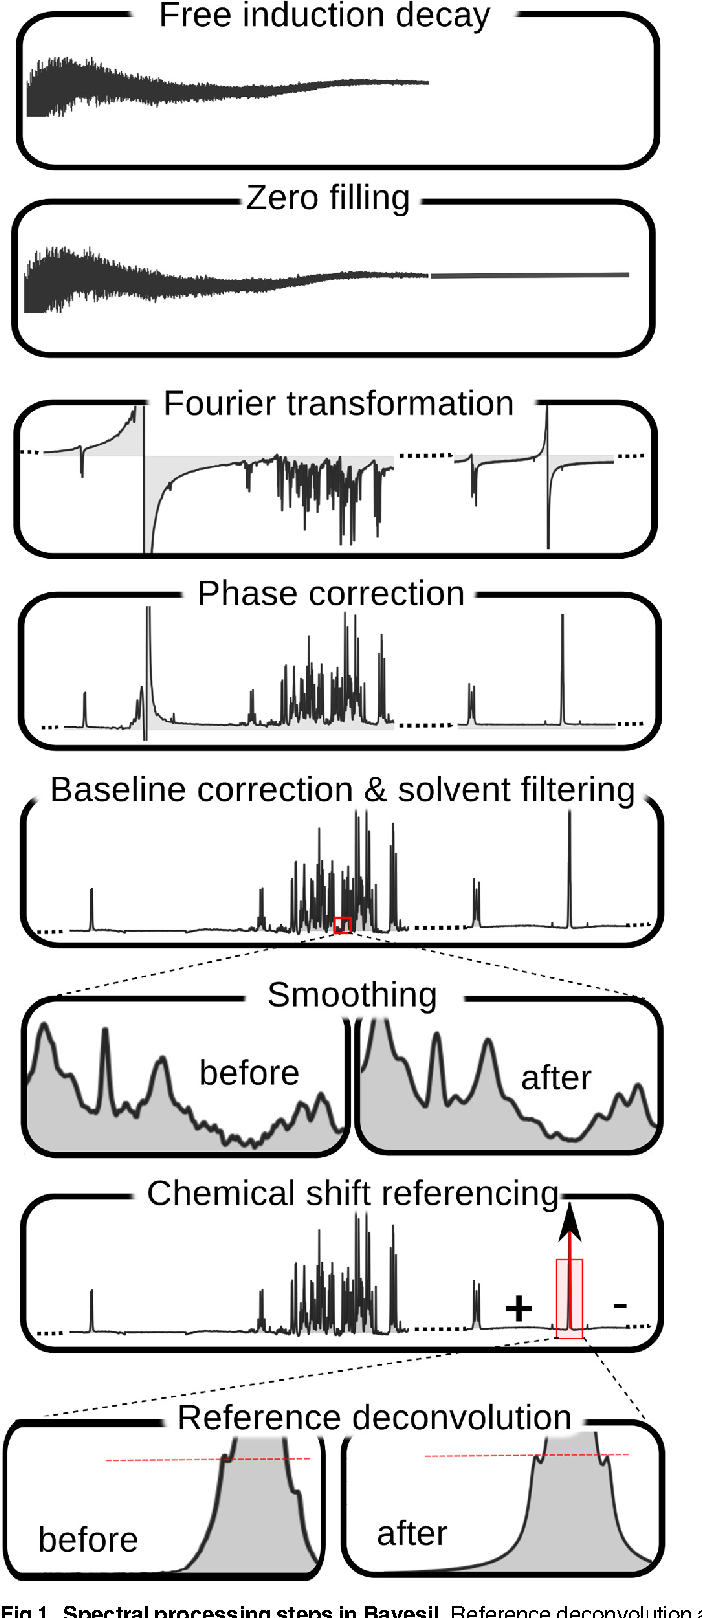 Figure 1 for Accurate, fully-automated NMR spectral profiling for metabolomics